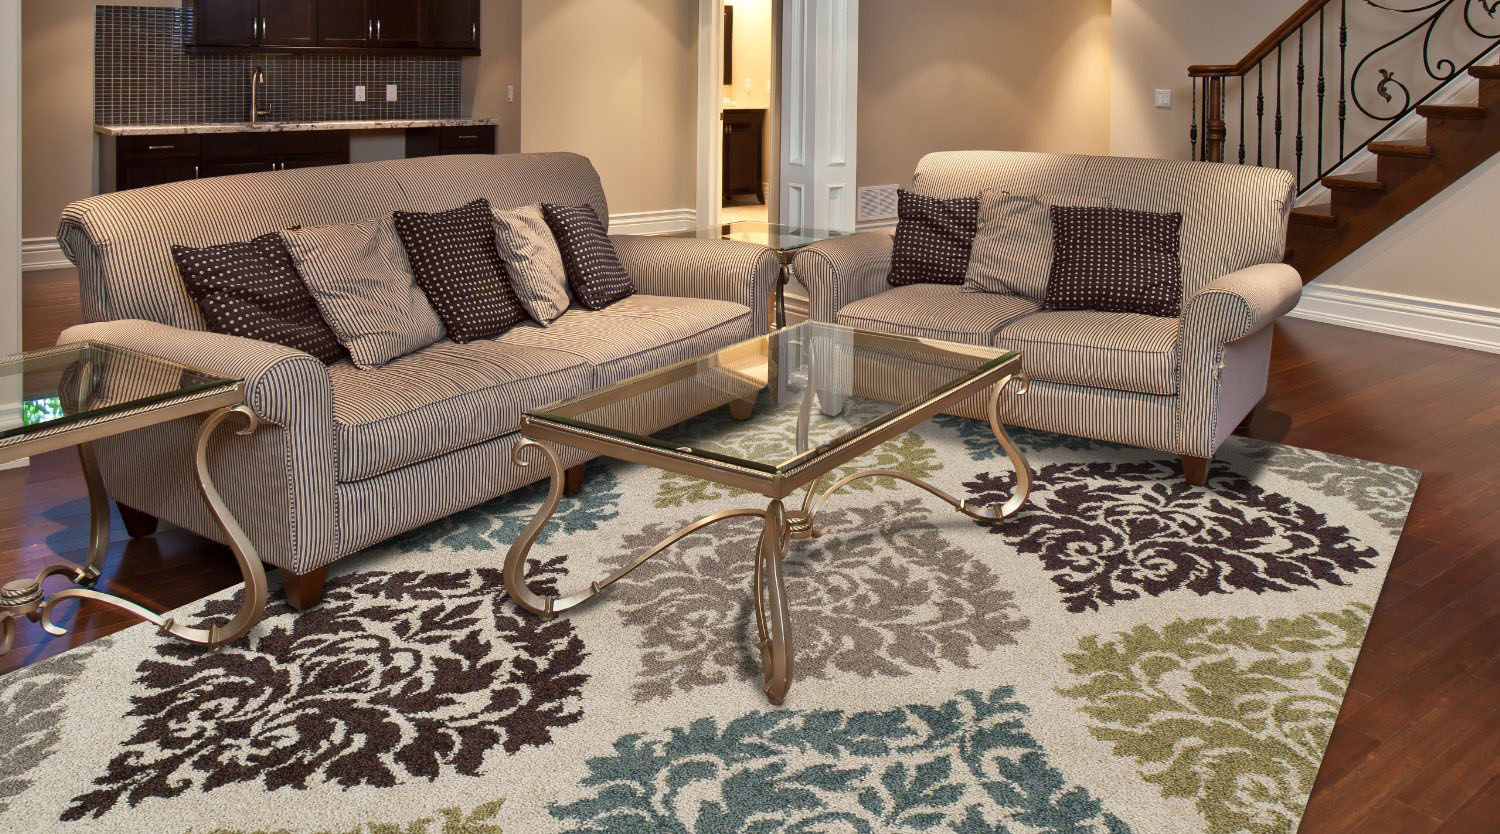 create cozy room ambience with area rugs idesignarch On living room area rugs